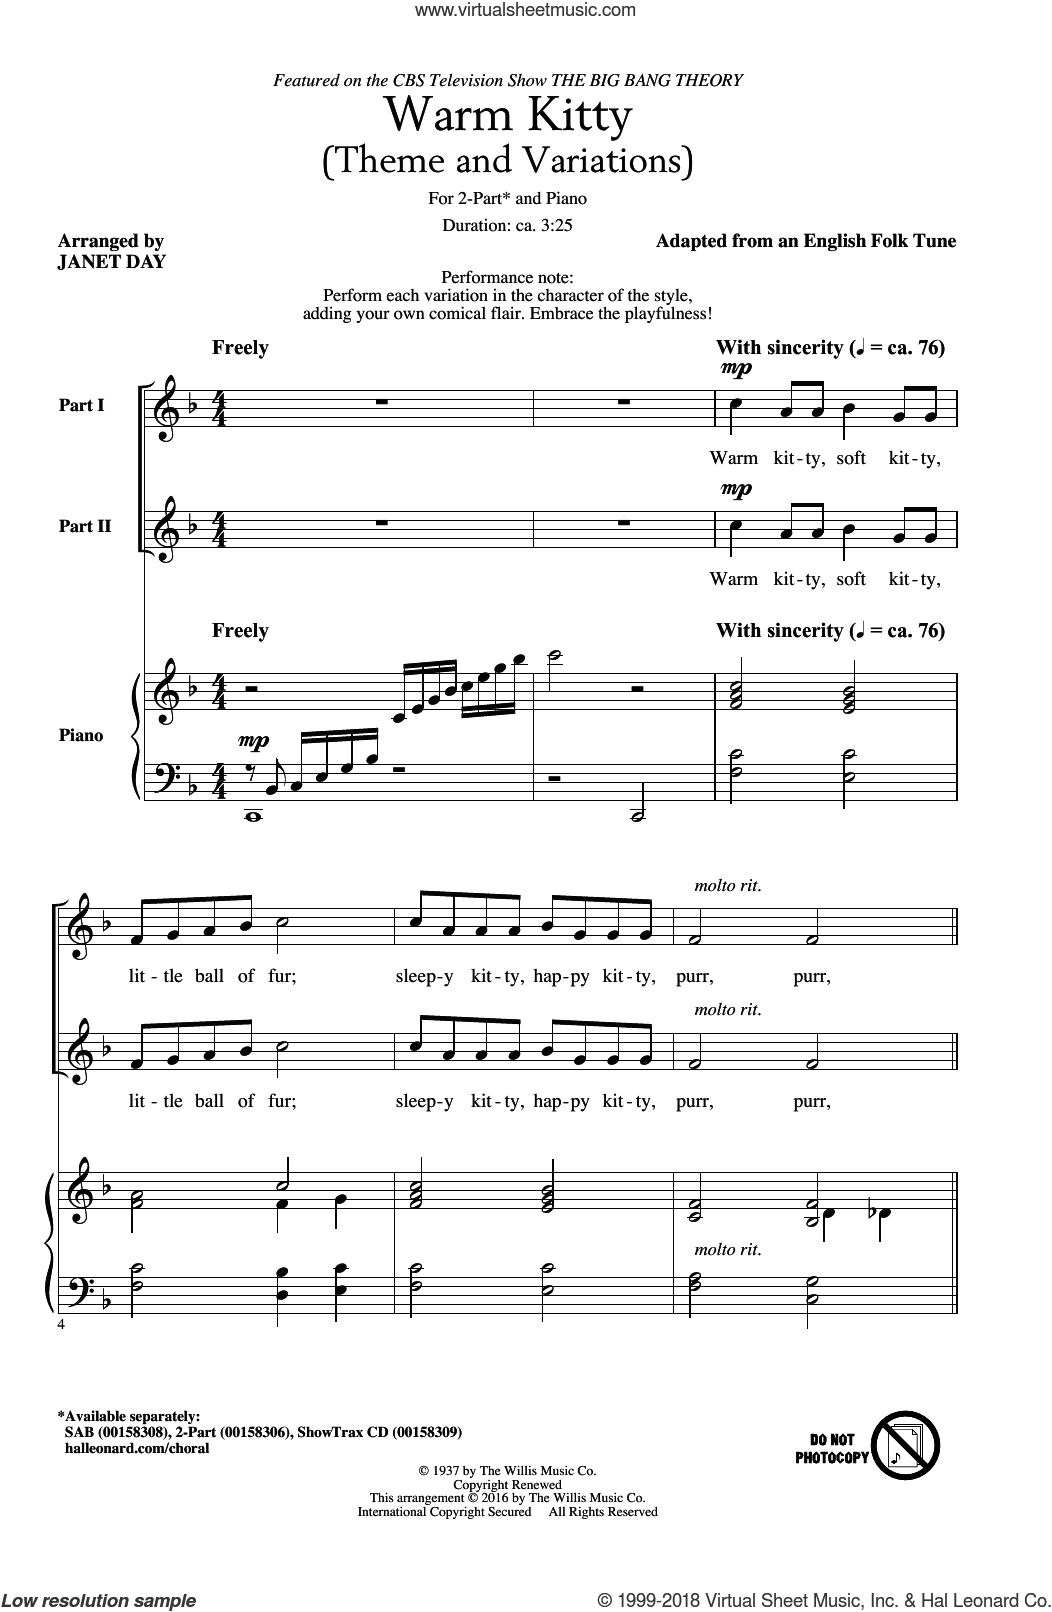 Warm Kitty sheet music for choir (2-Part) by English Folk Tune (adapted) and Janet Day, intermediate duet